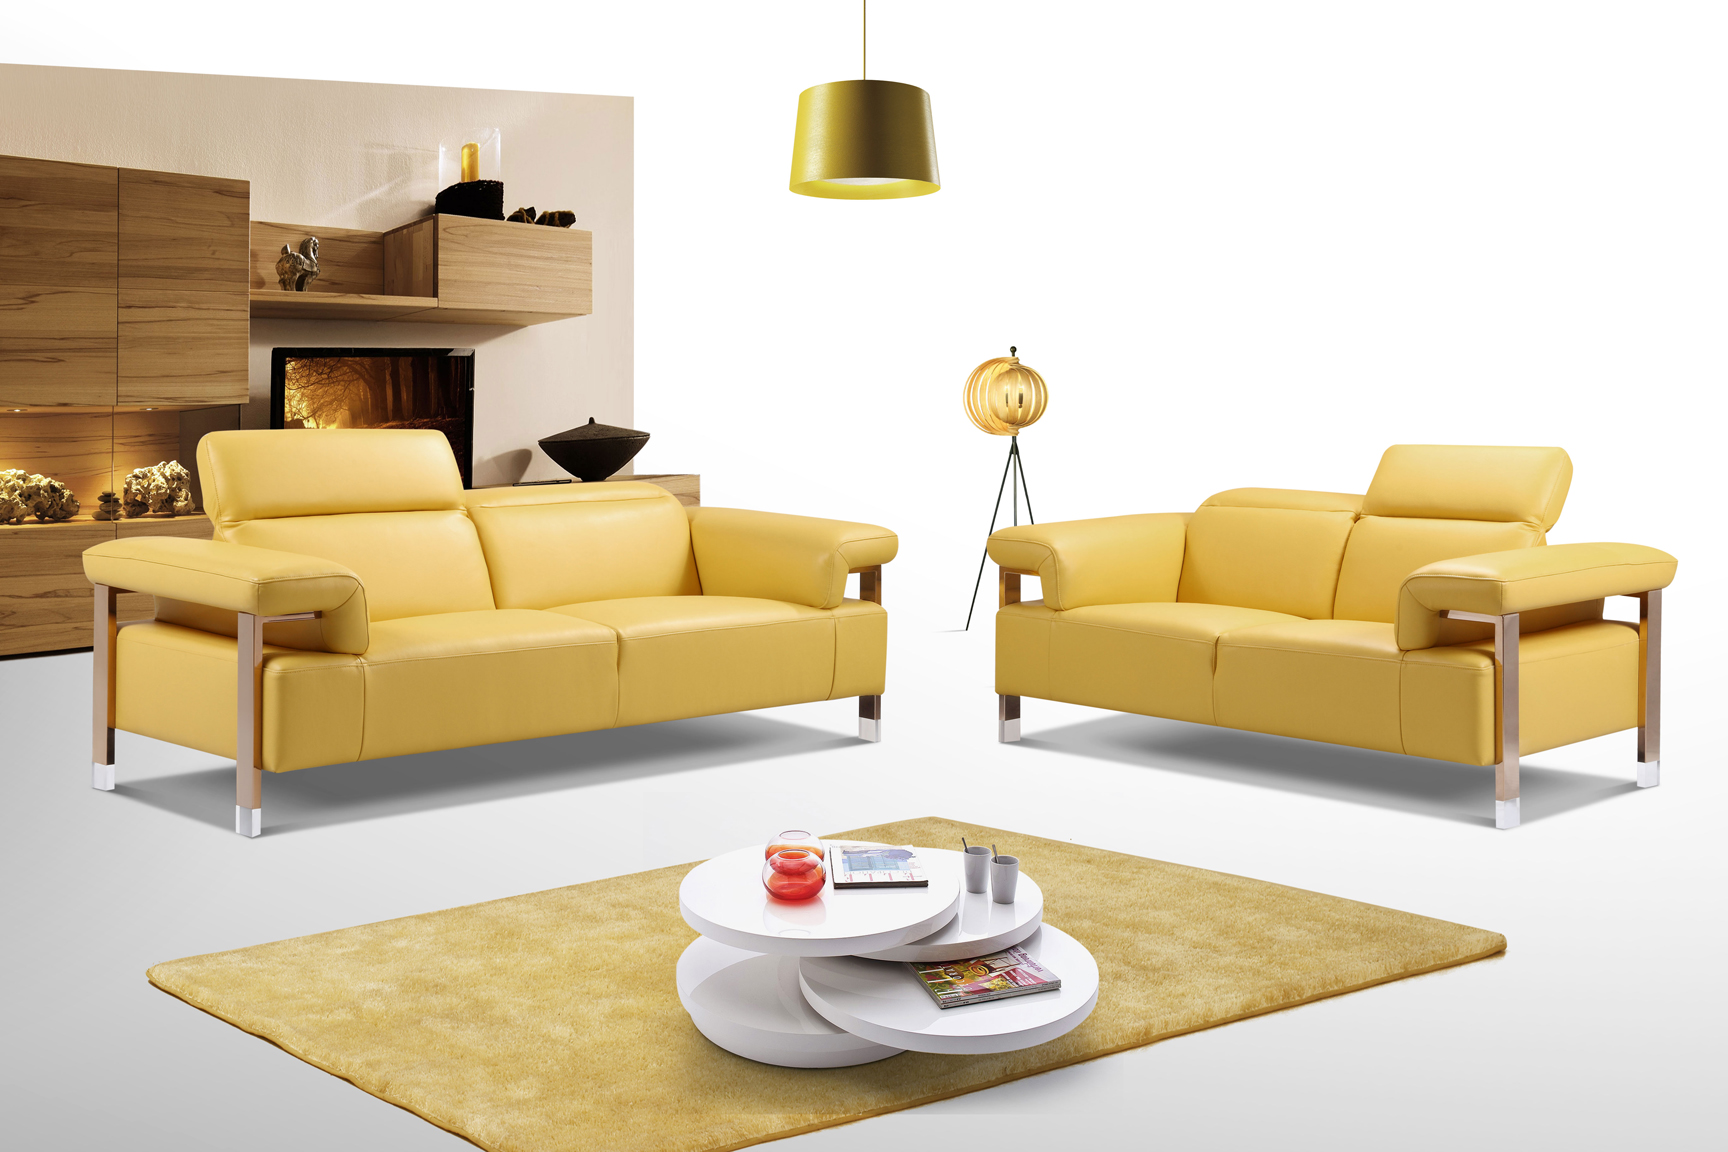 Swell Canary Yellow Three Piece Top Grain Leather Living Room Set Interior Design Ideas Tzicisoteloinfo